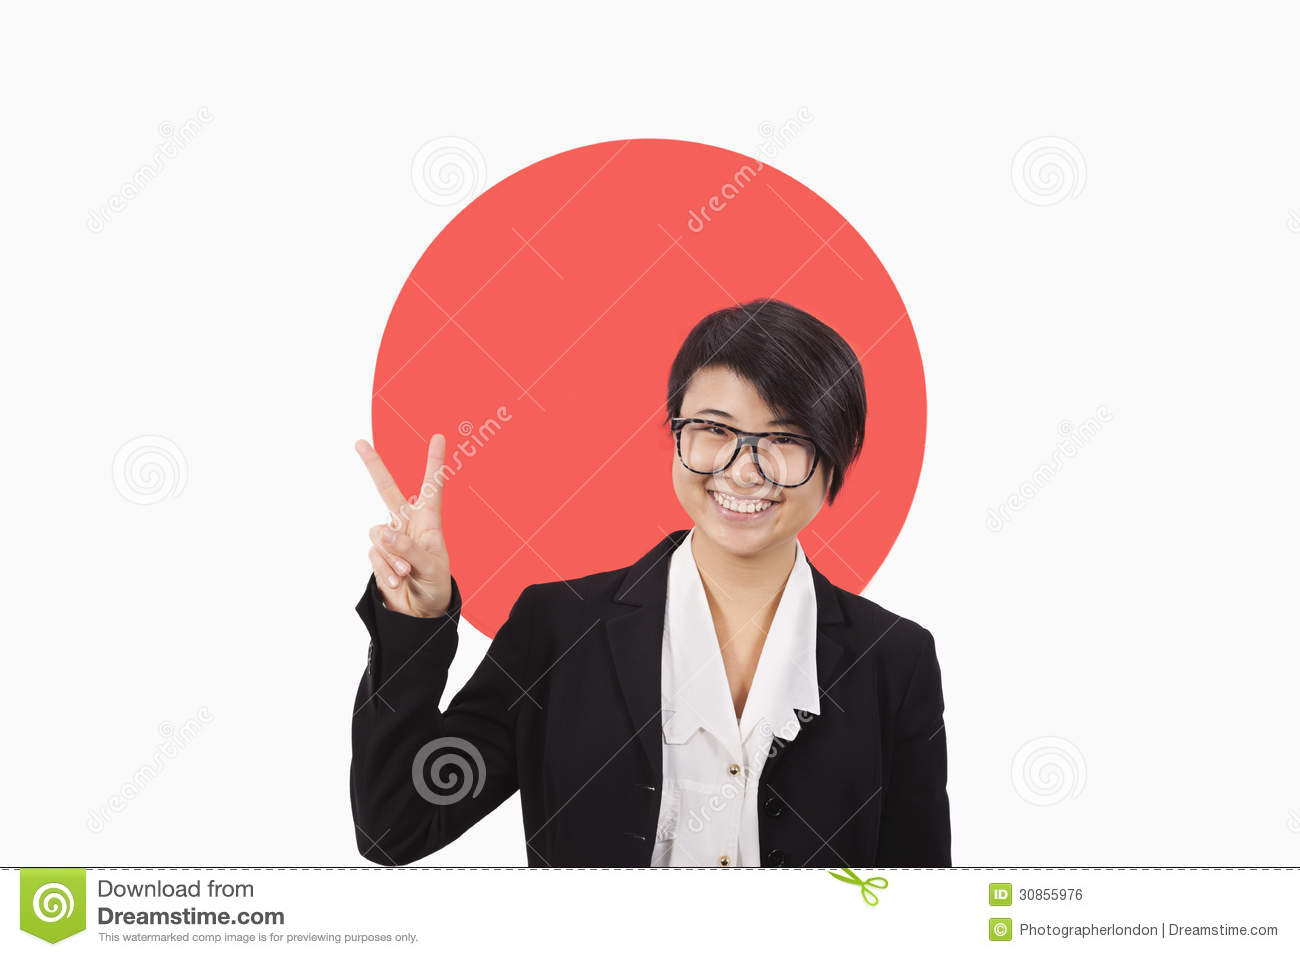 portrait of young businesswoman gesturing peace sign over japanese